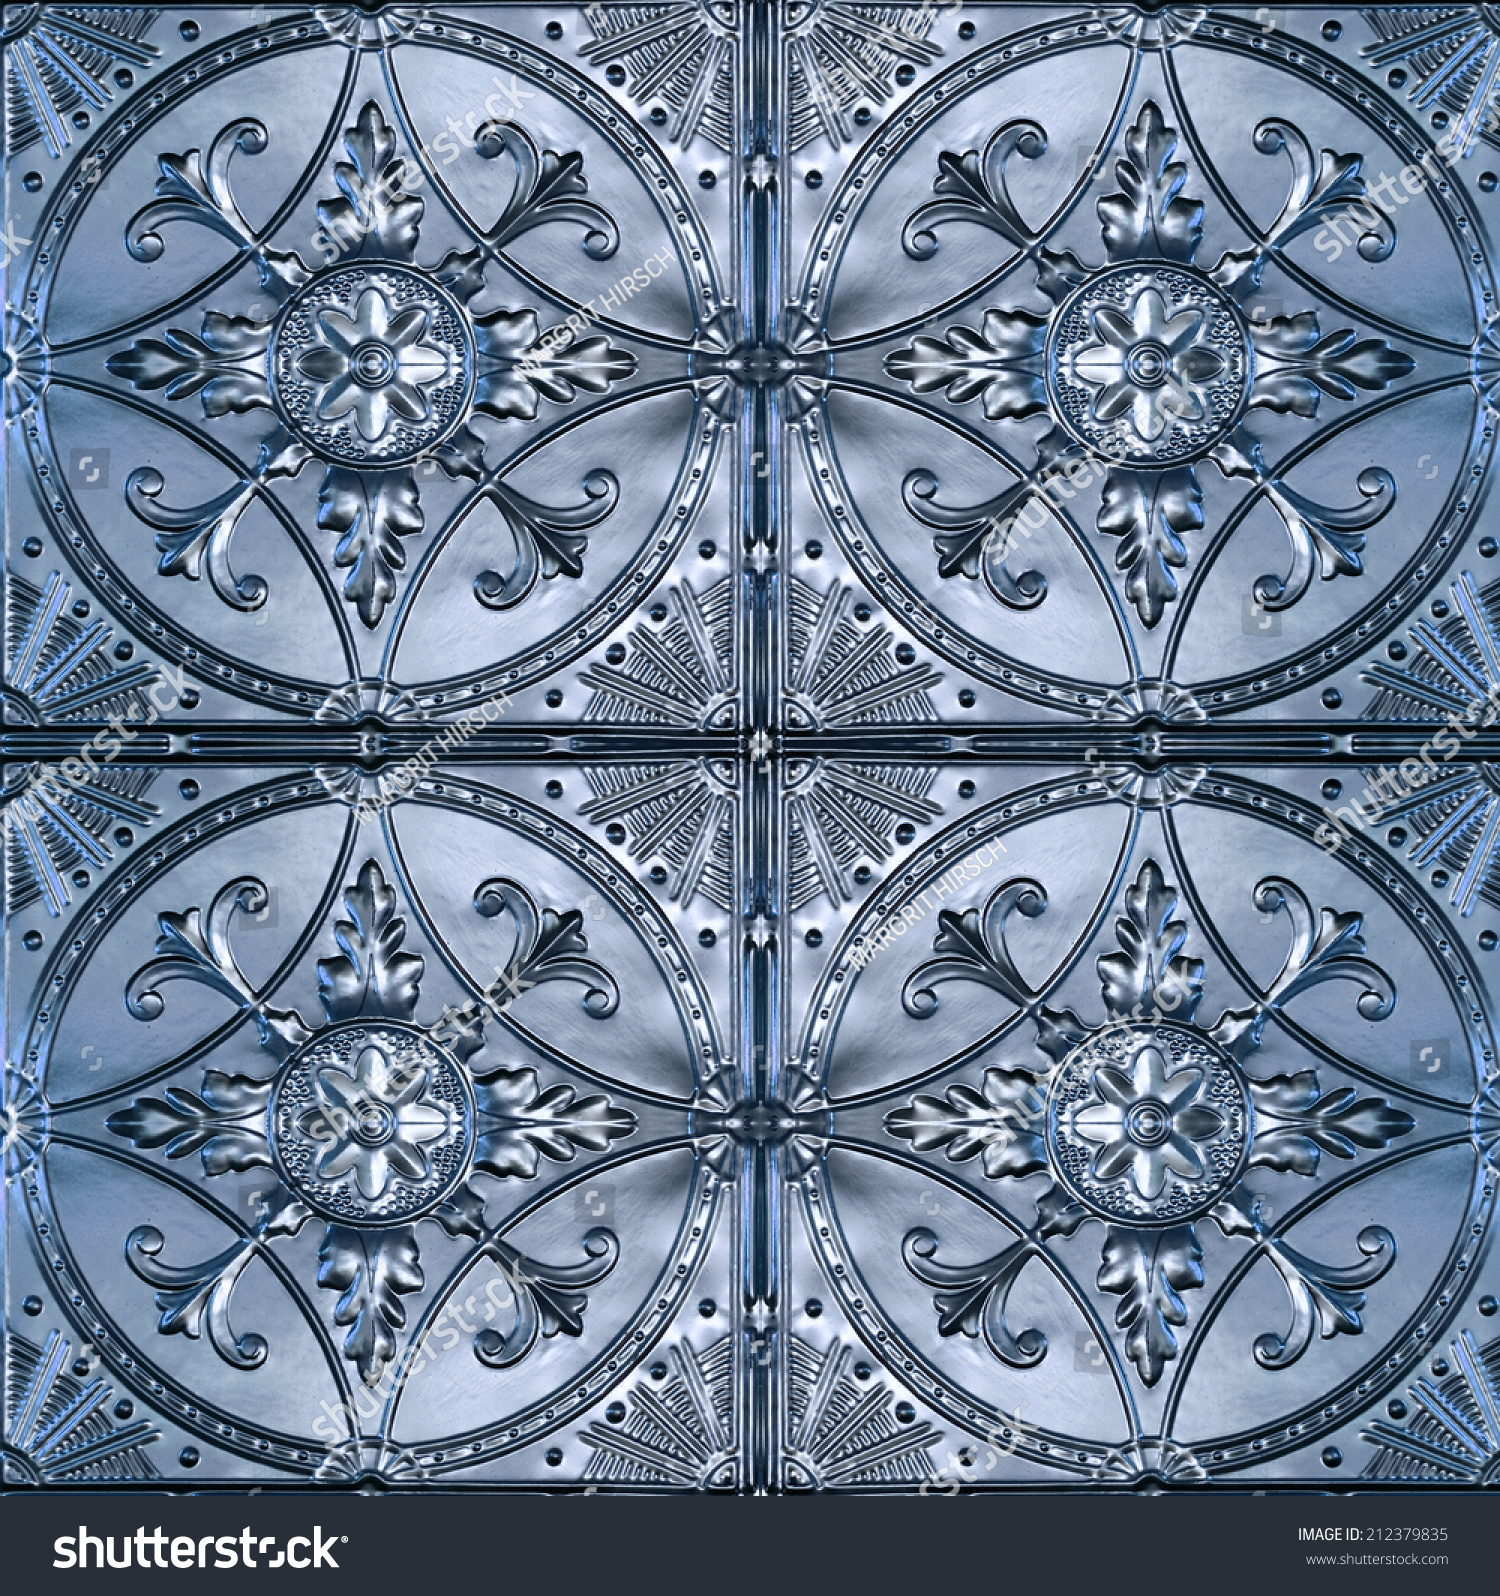 detailed ceiling textured tiles silver metallic closeup background view of dark nice luxury amazing